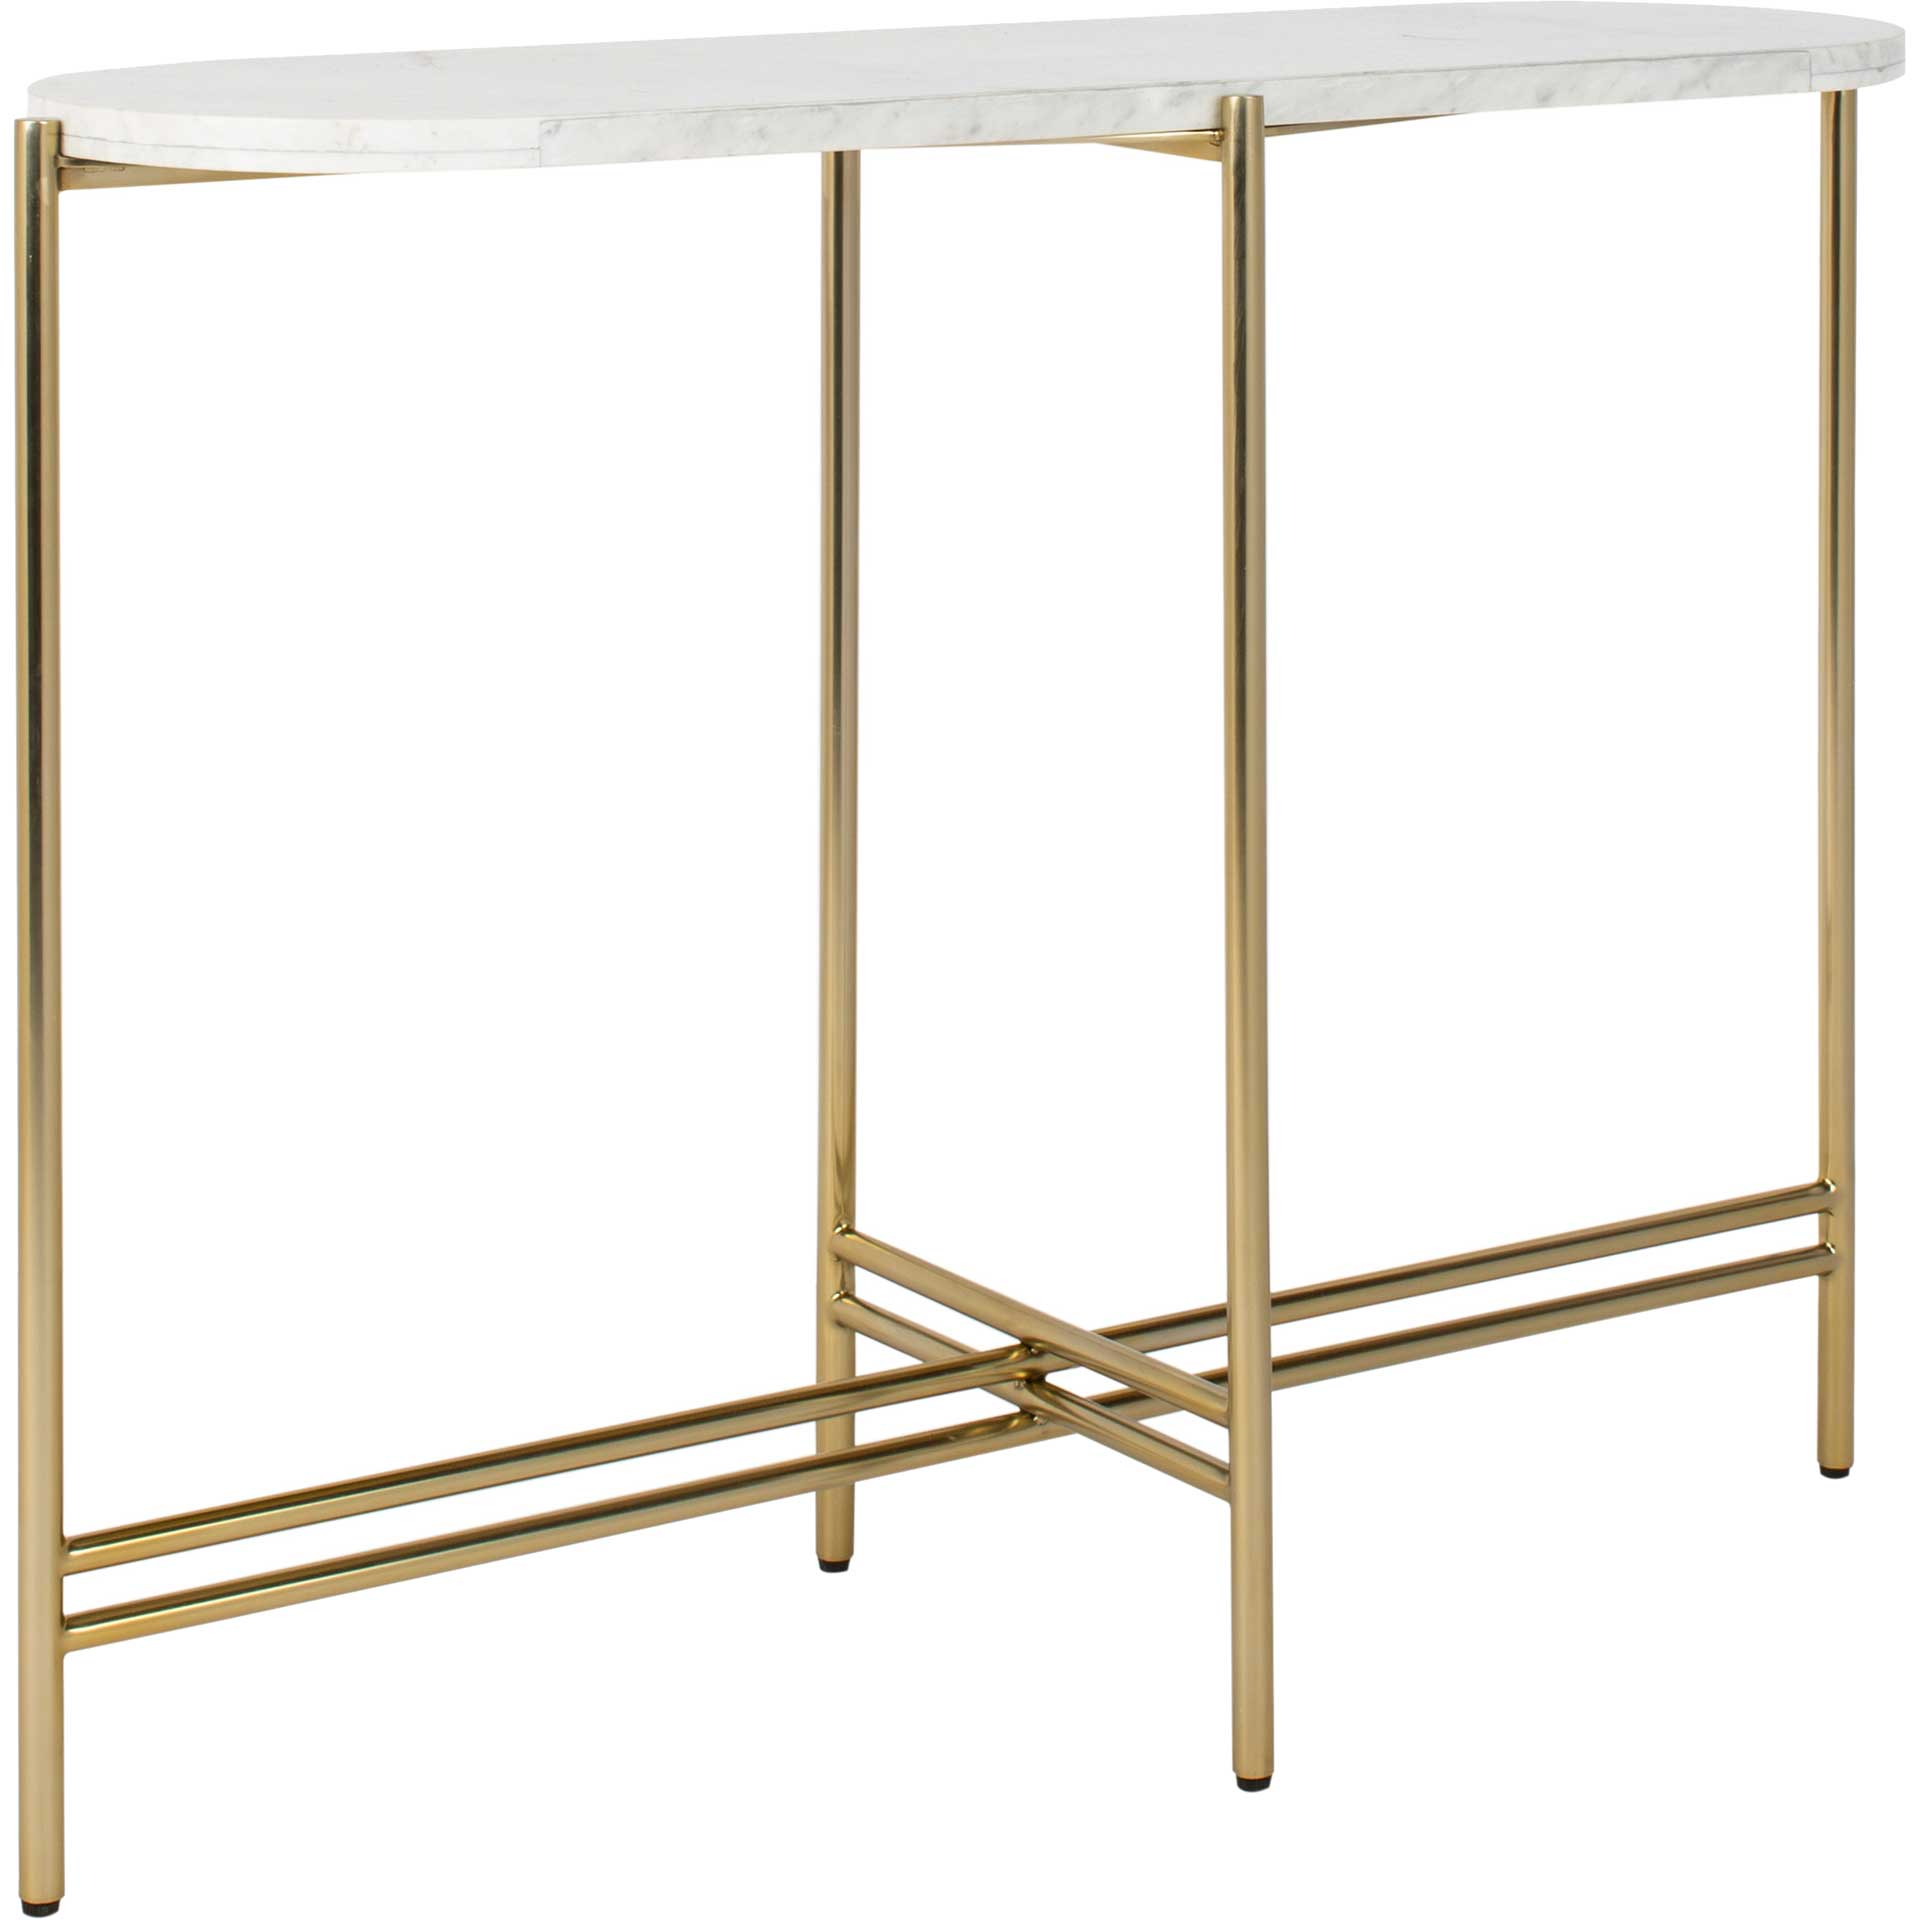 Caden Small Console Table White/Gold